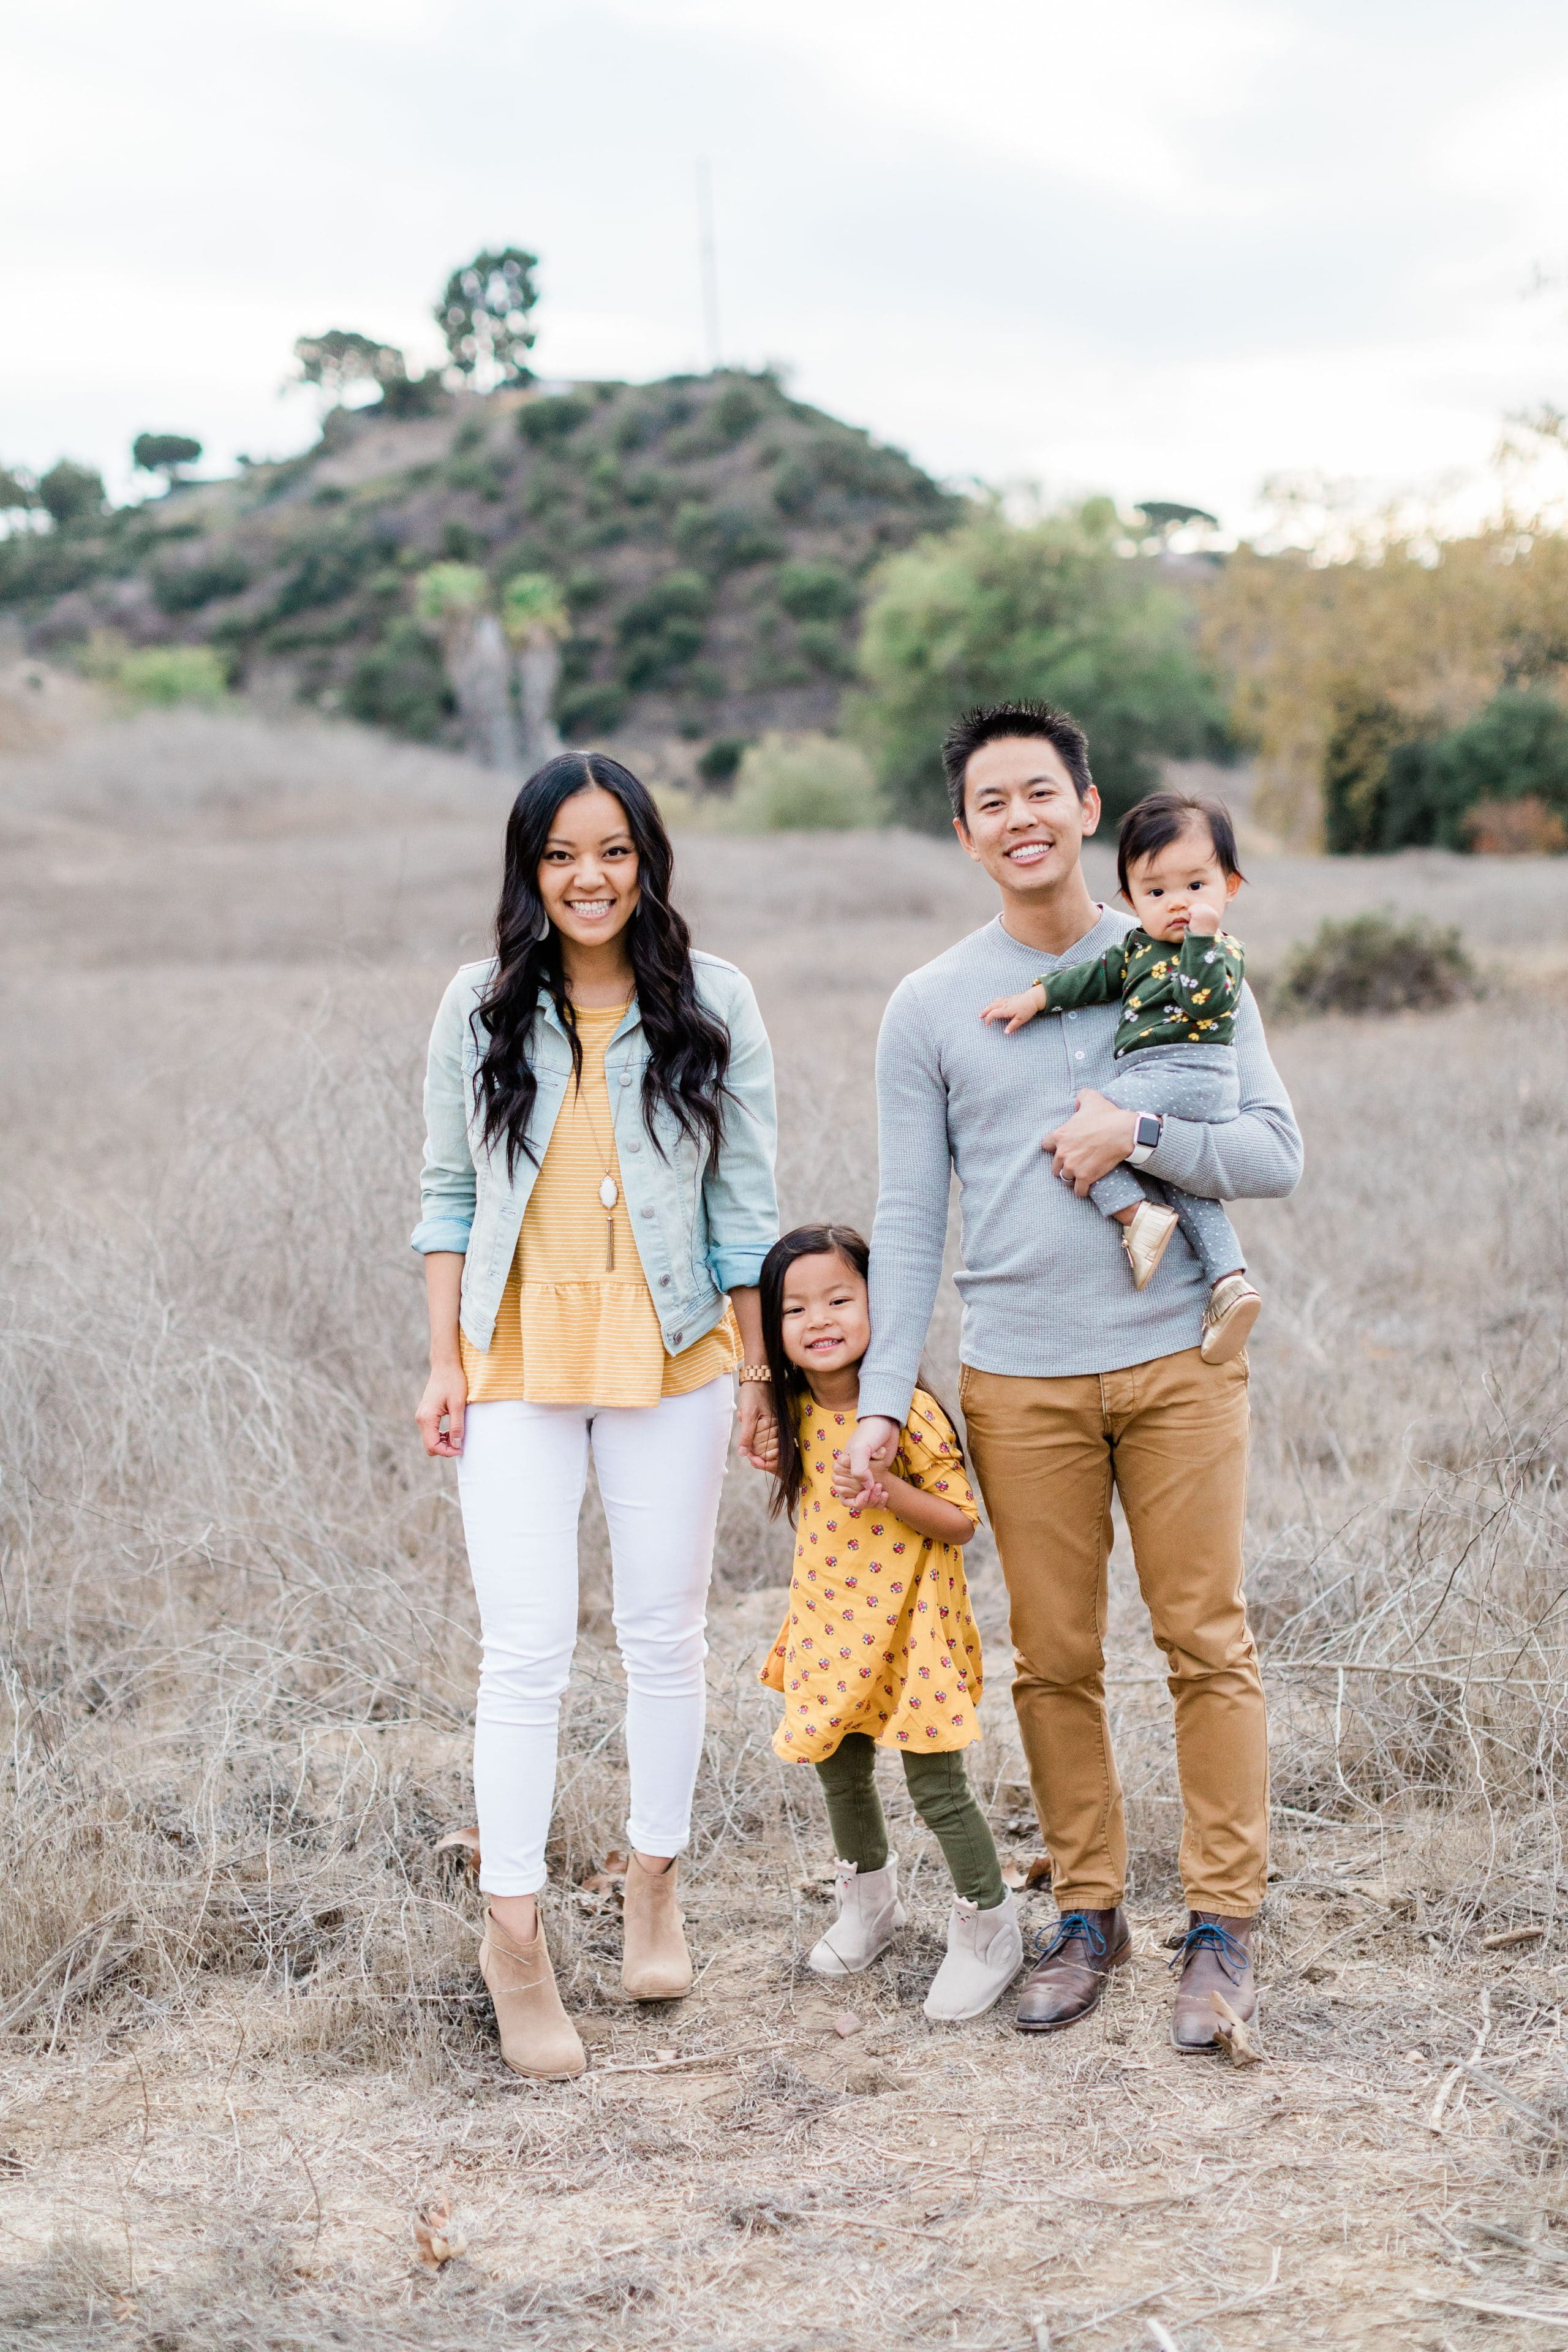 Outfits for Family Photos Without Looking Matchy